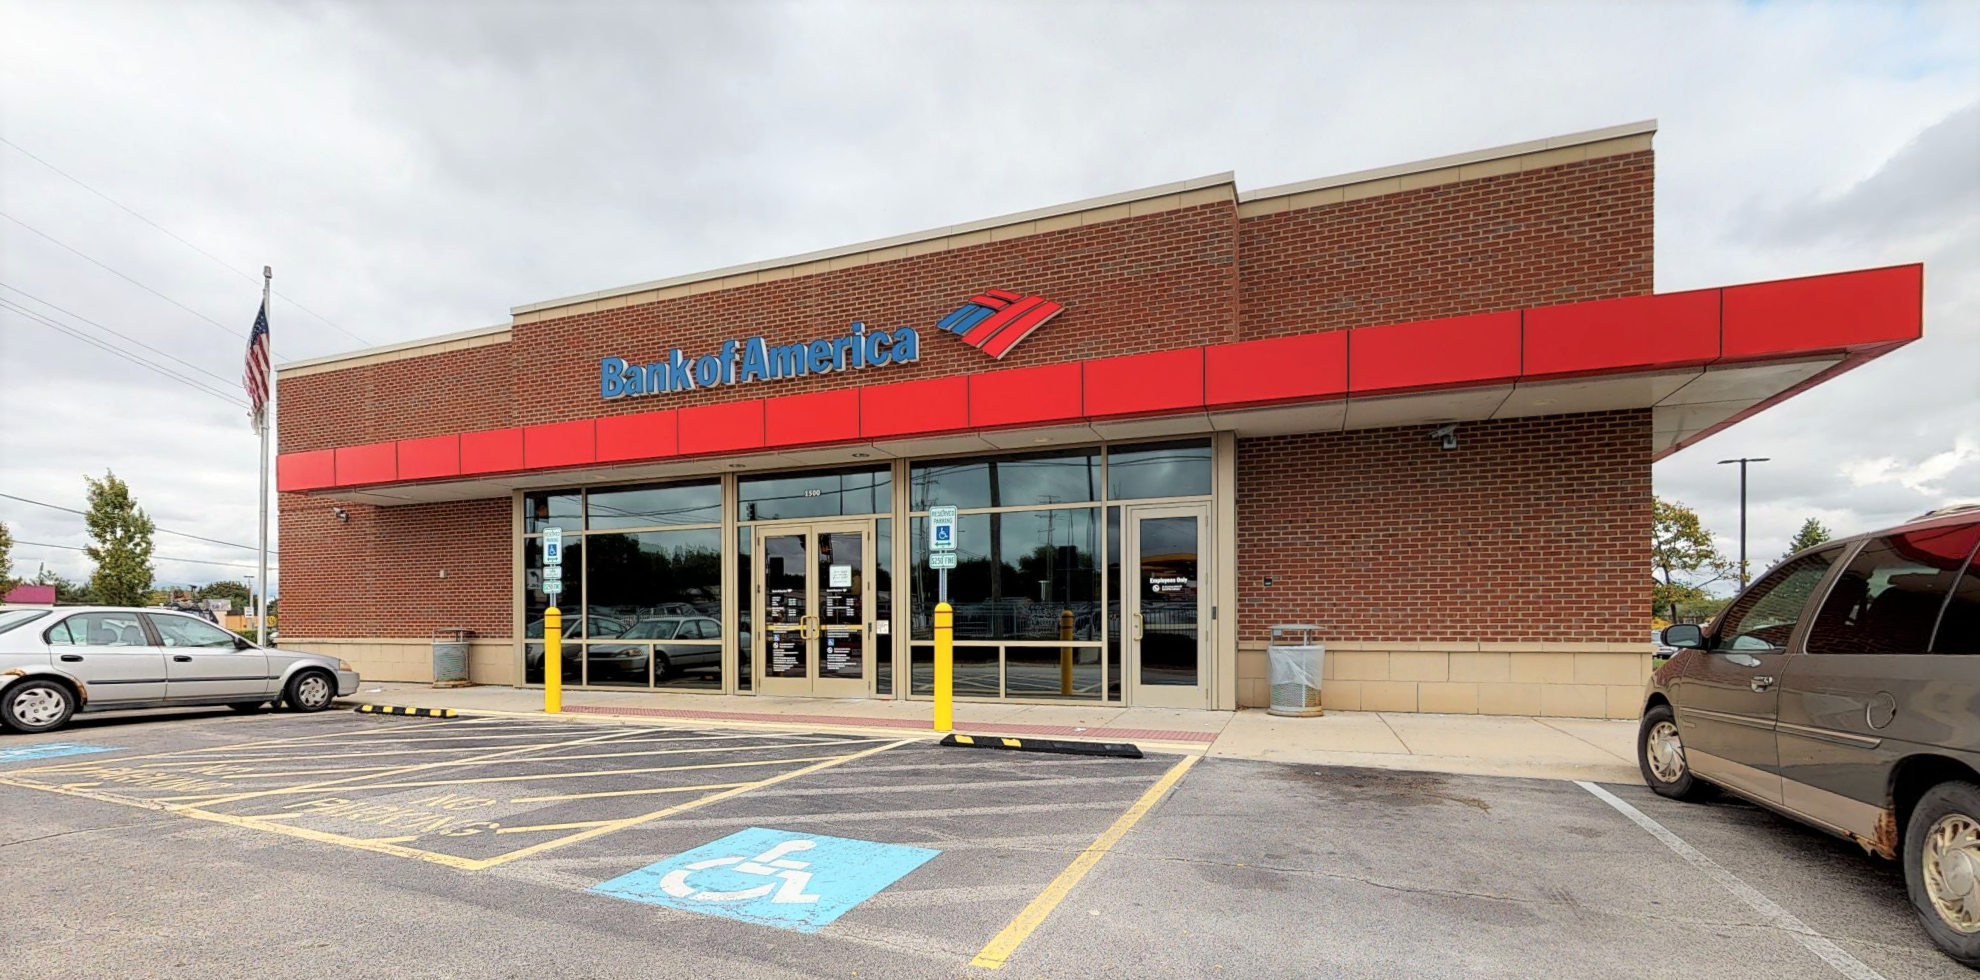 Bank of America financial center with drive-thru ATM and teller   1500 Irving Park Rd, Hanover Park, IL 60133